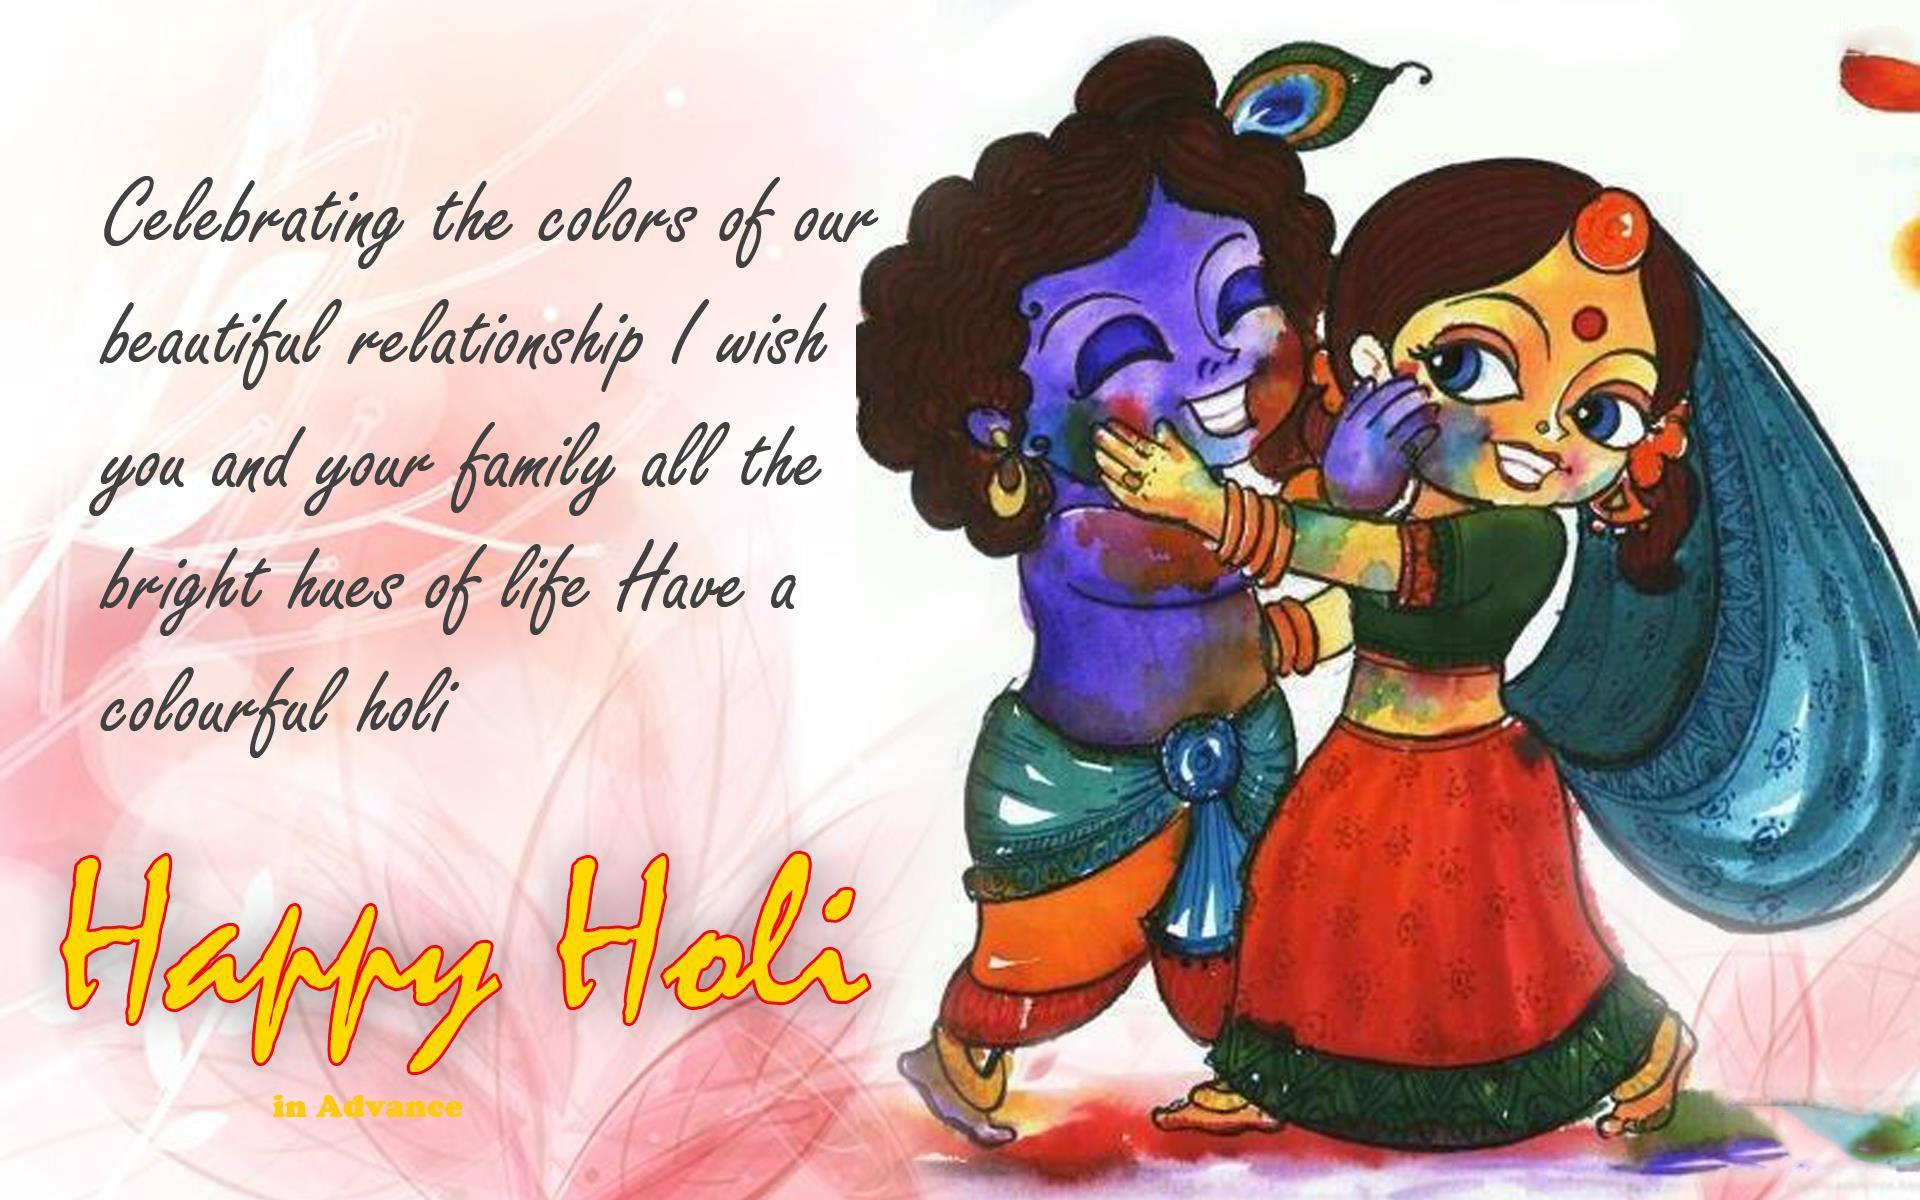 happy holi in advance quotes images